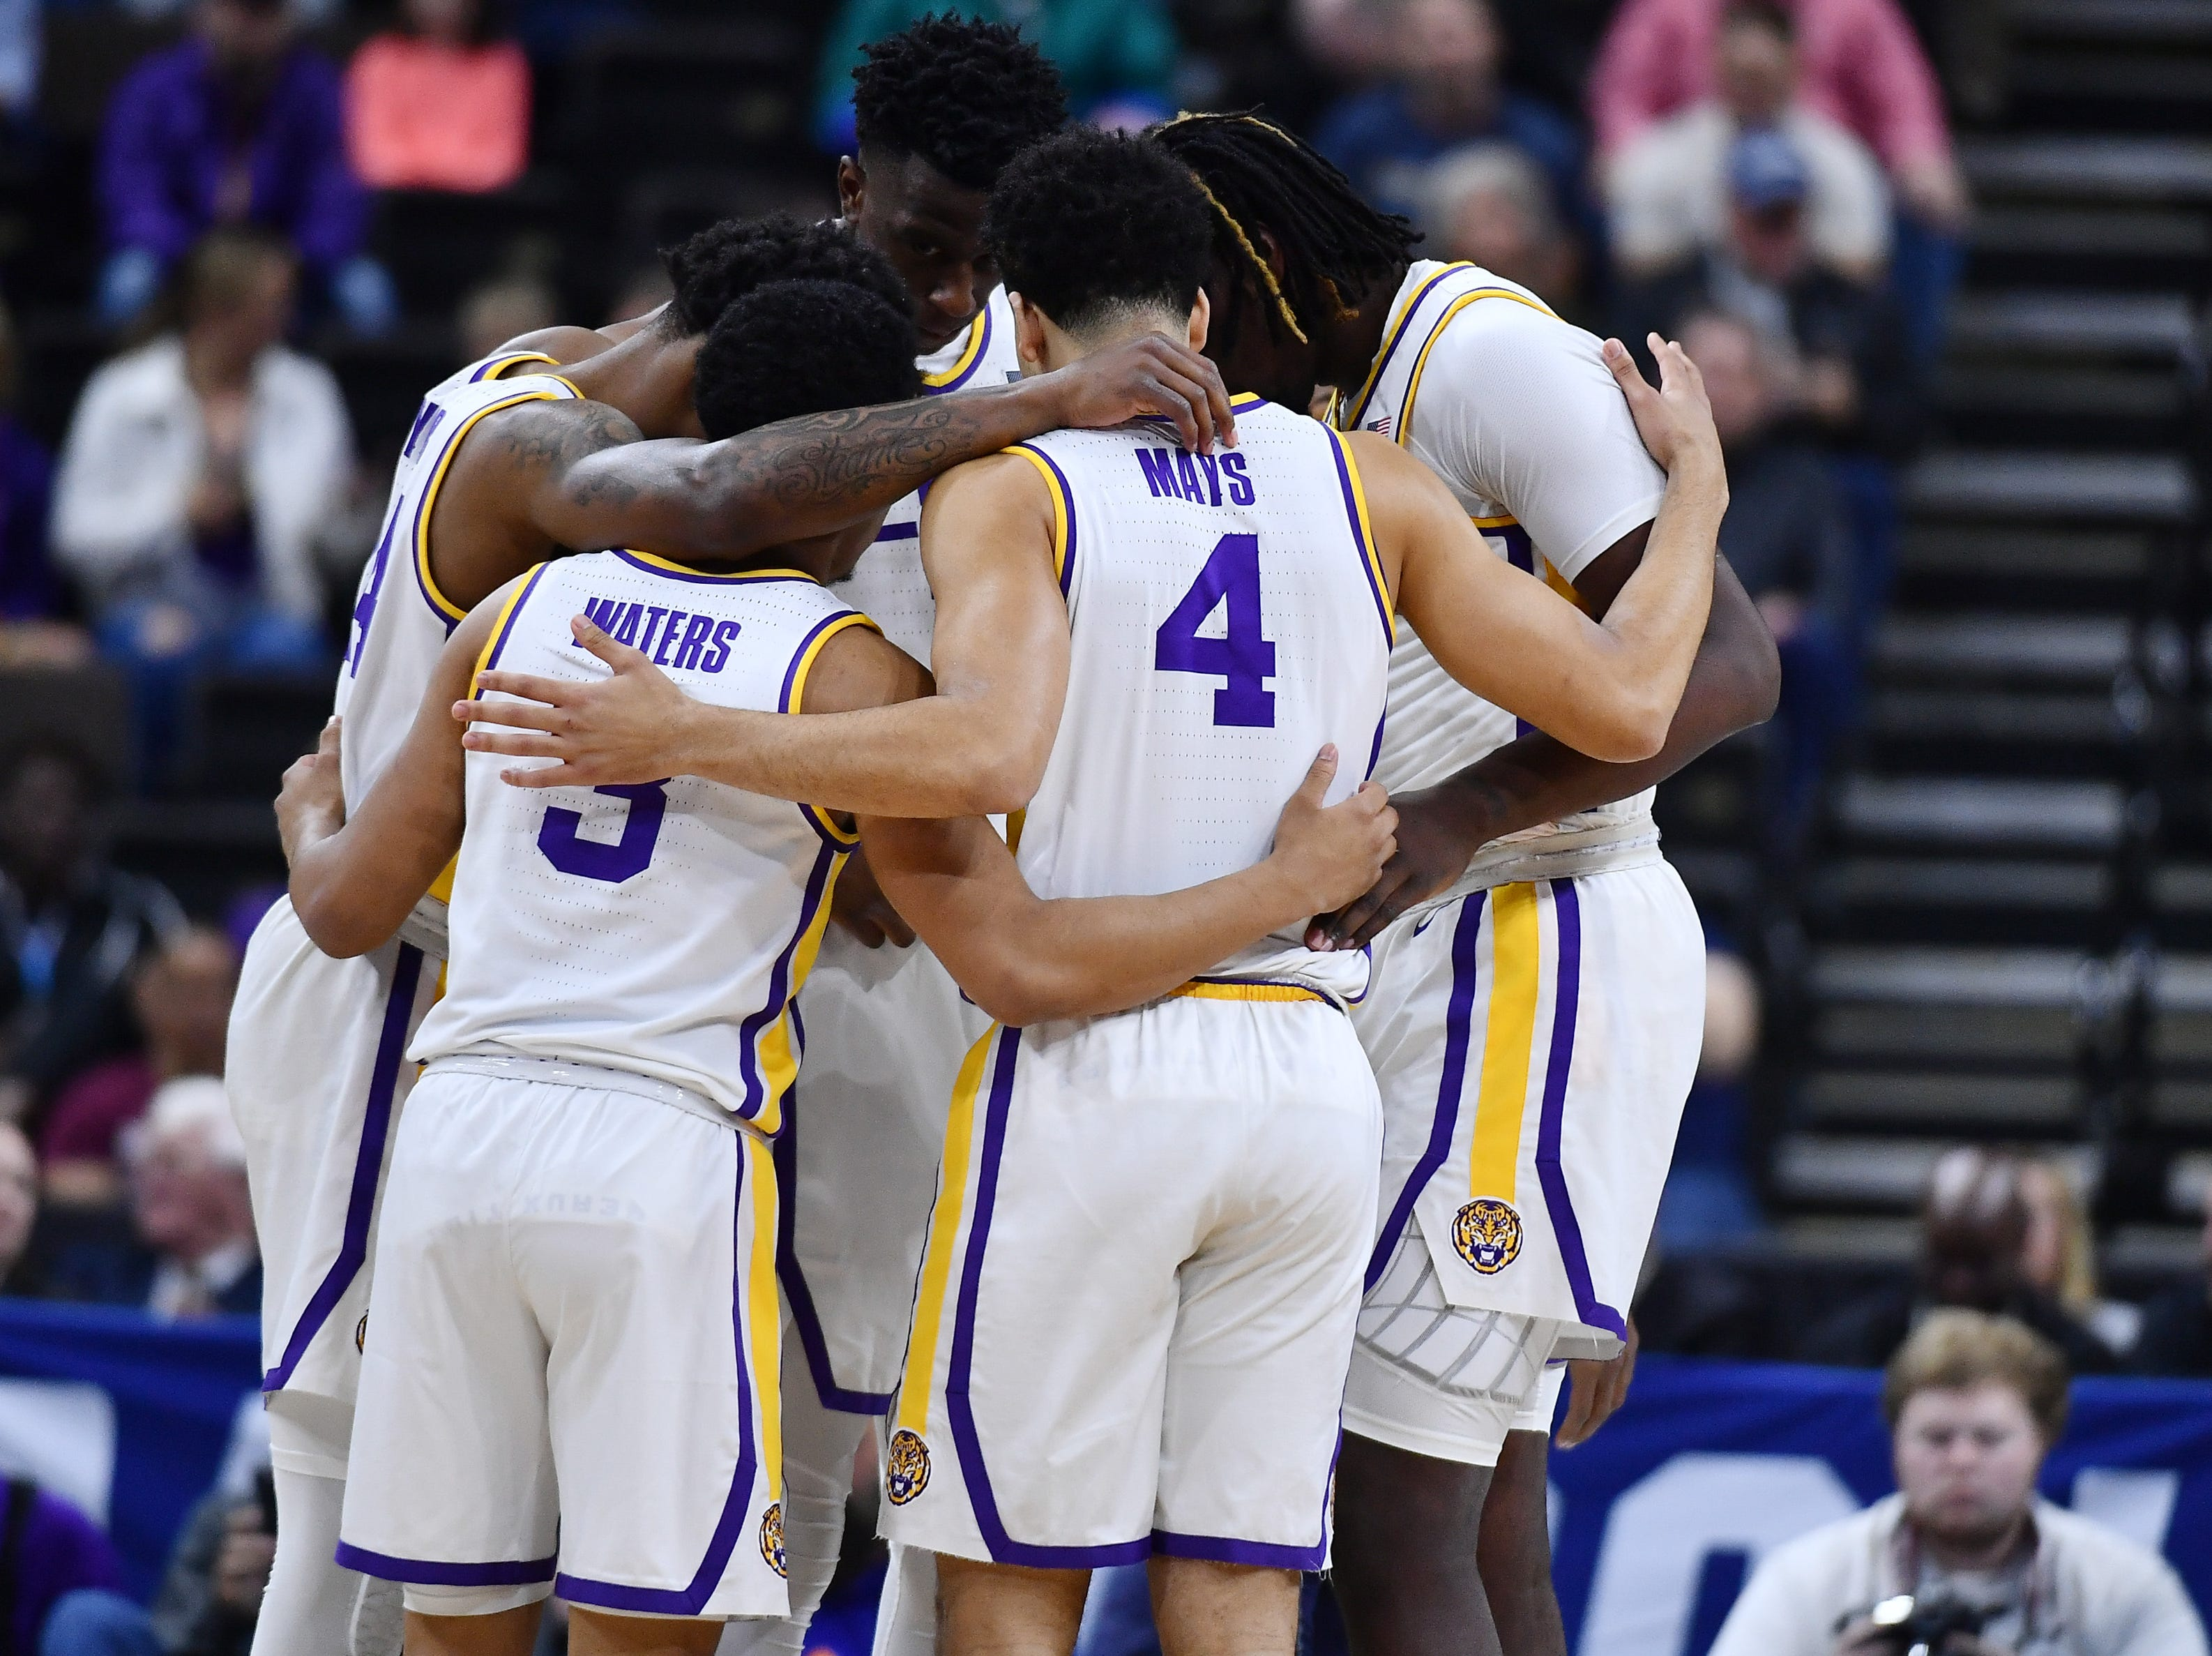 Mar 21, 2019; Jacksonville, FL, USA; The LSU Tigers huddle during the first half against the Yale Bulldogs in the first round of the 2019 NCAA Tournament at Jacksonville Veterans Memorial Arena. Mandatory Credit: John David Mercer-USA TODAY Sports